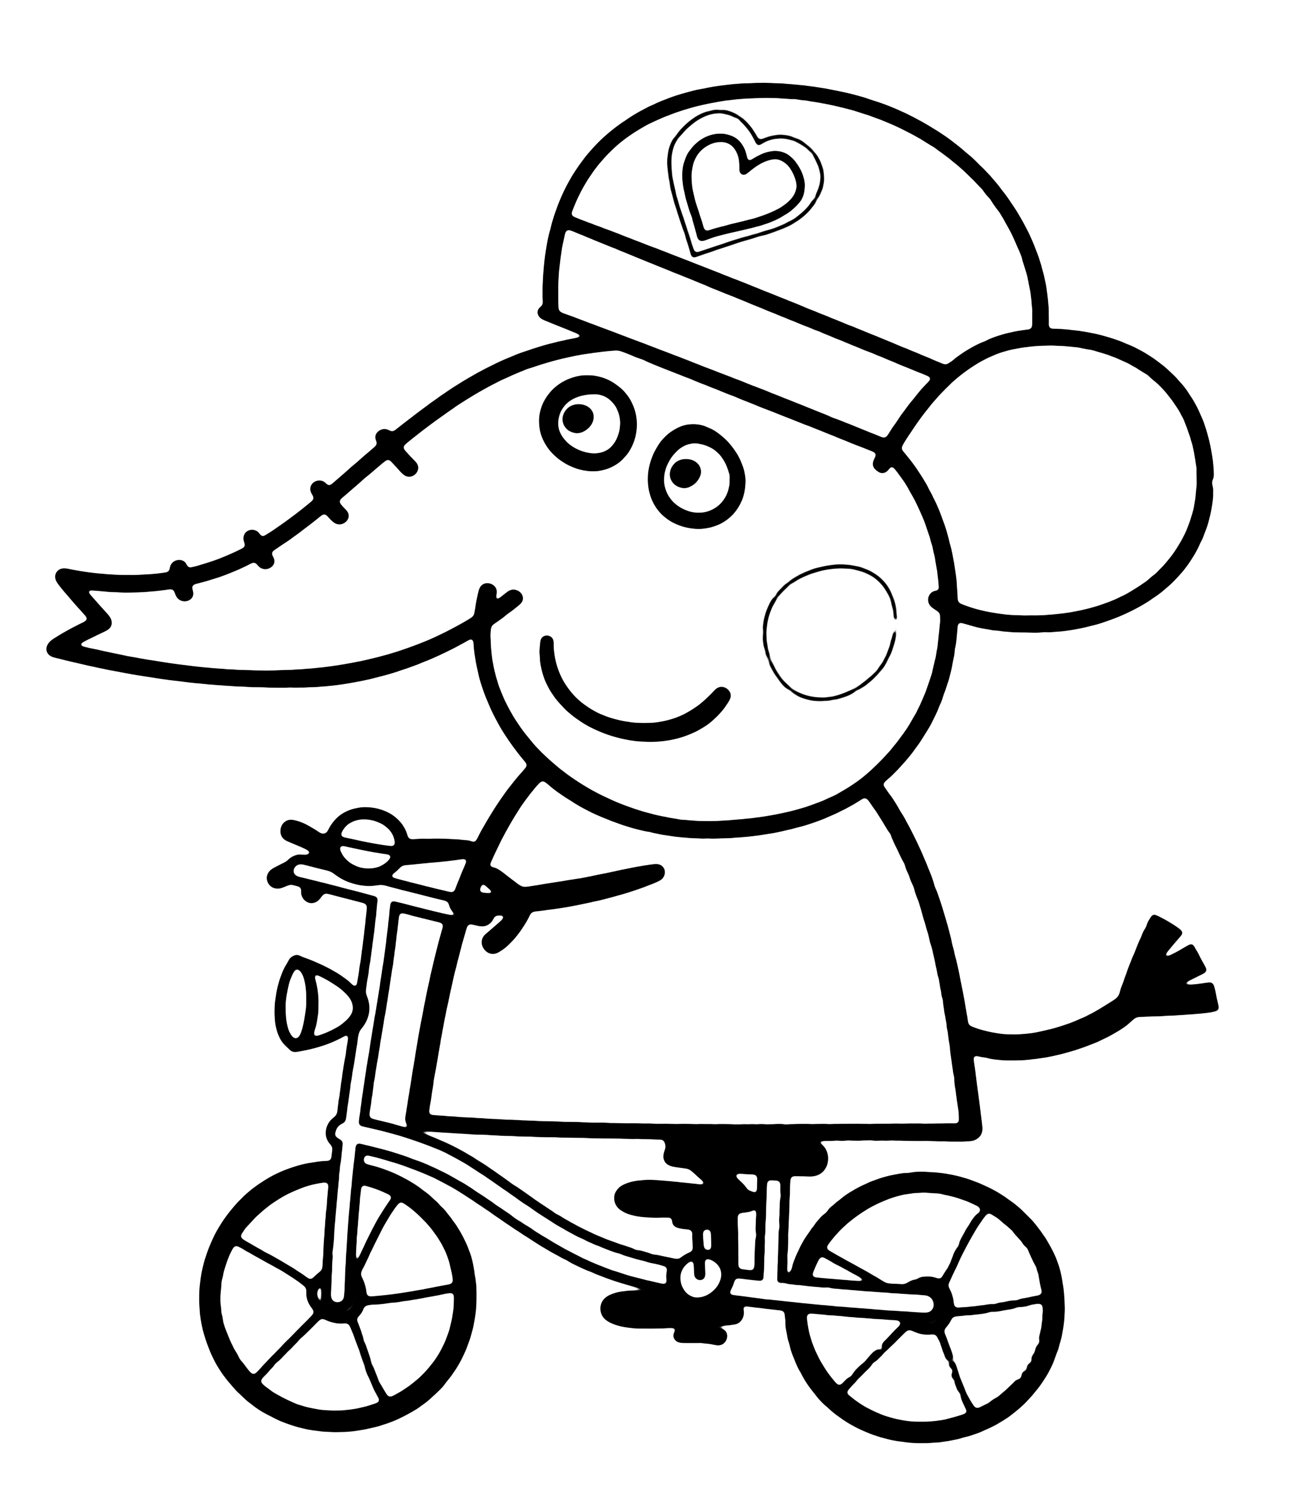 Peppa Pig Emily Elephant in bicycle